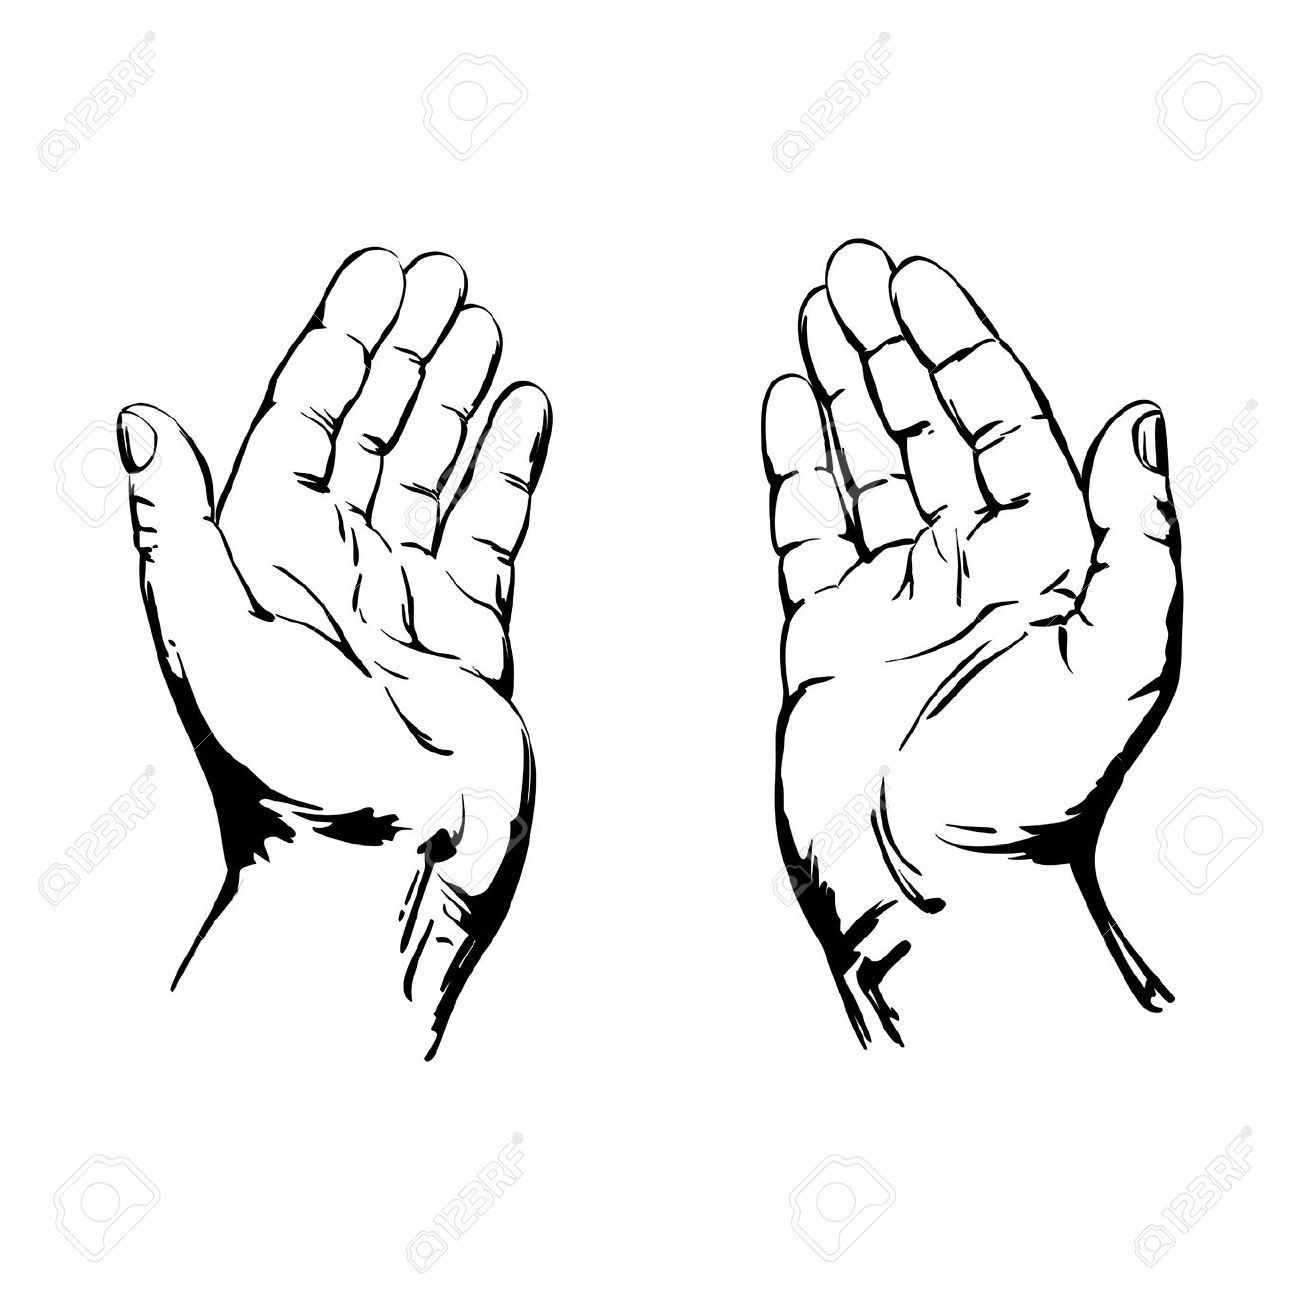 Gods clipart praying hand Praying clipart Clipart Free collection